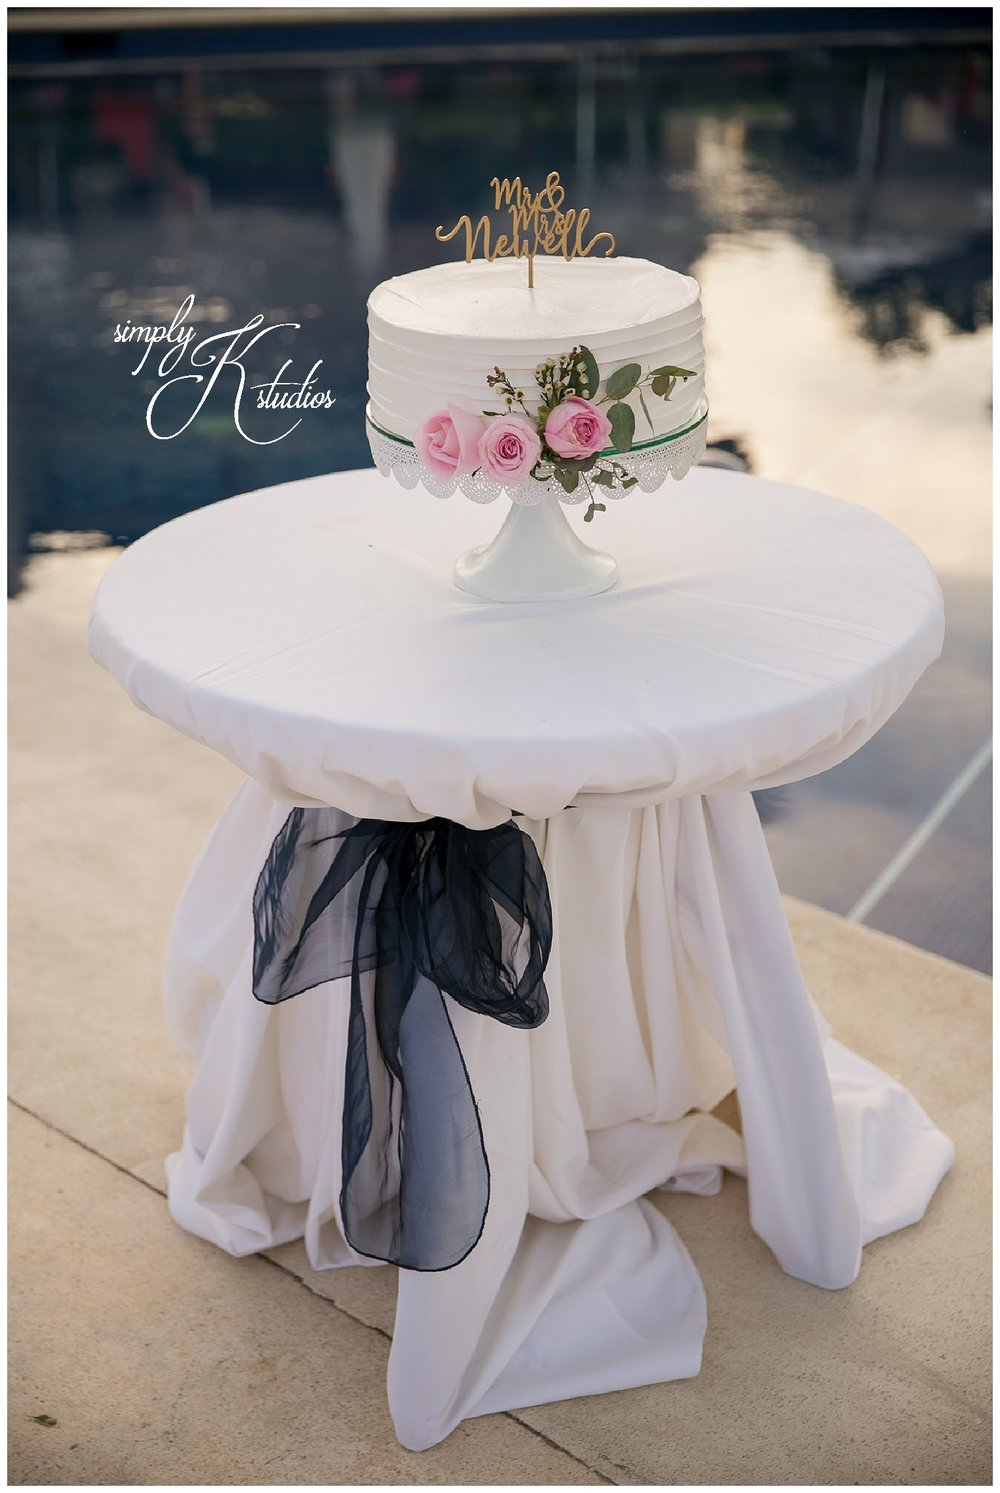 Wedding Cake at Dreams Riviera Cancun.jpg